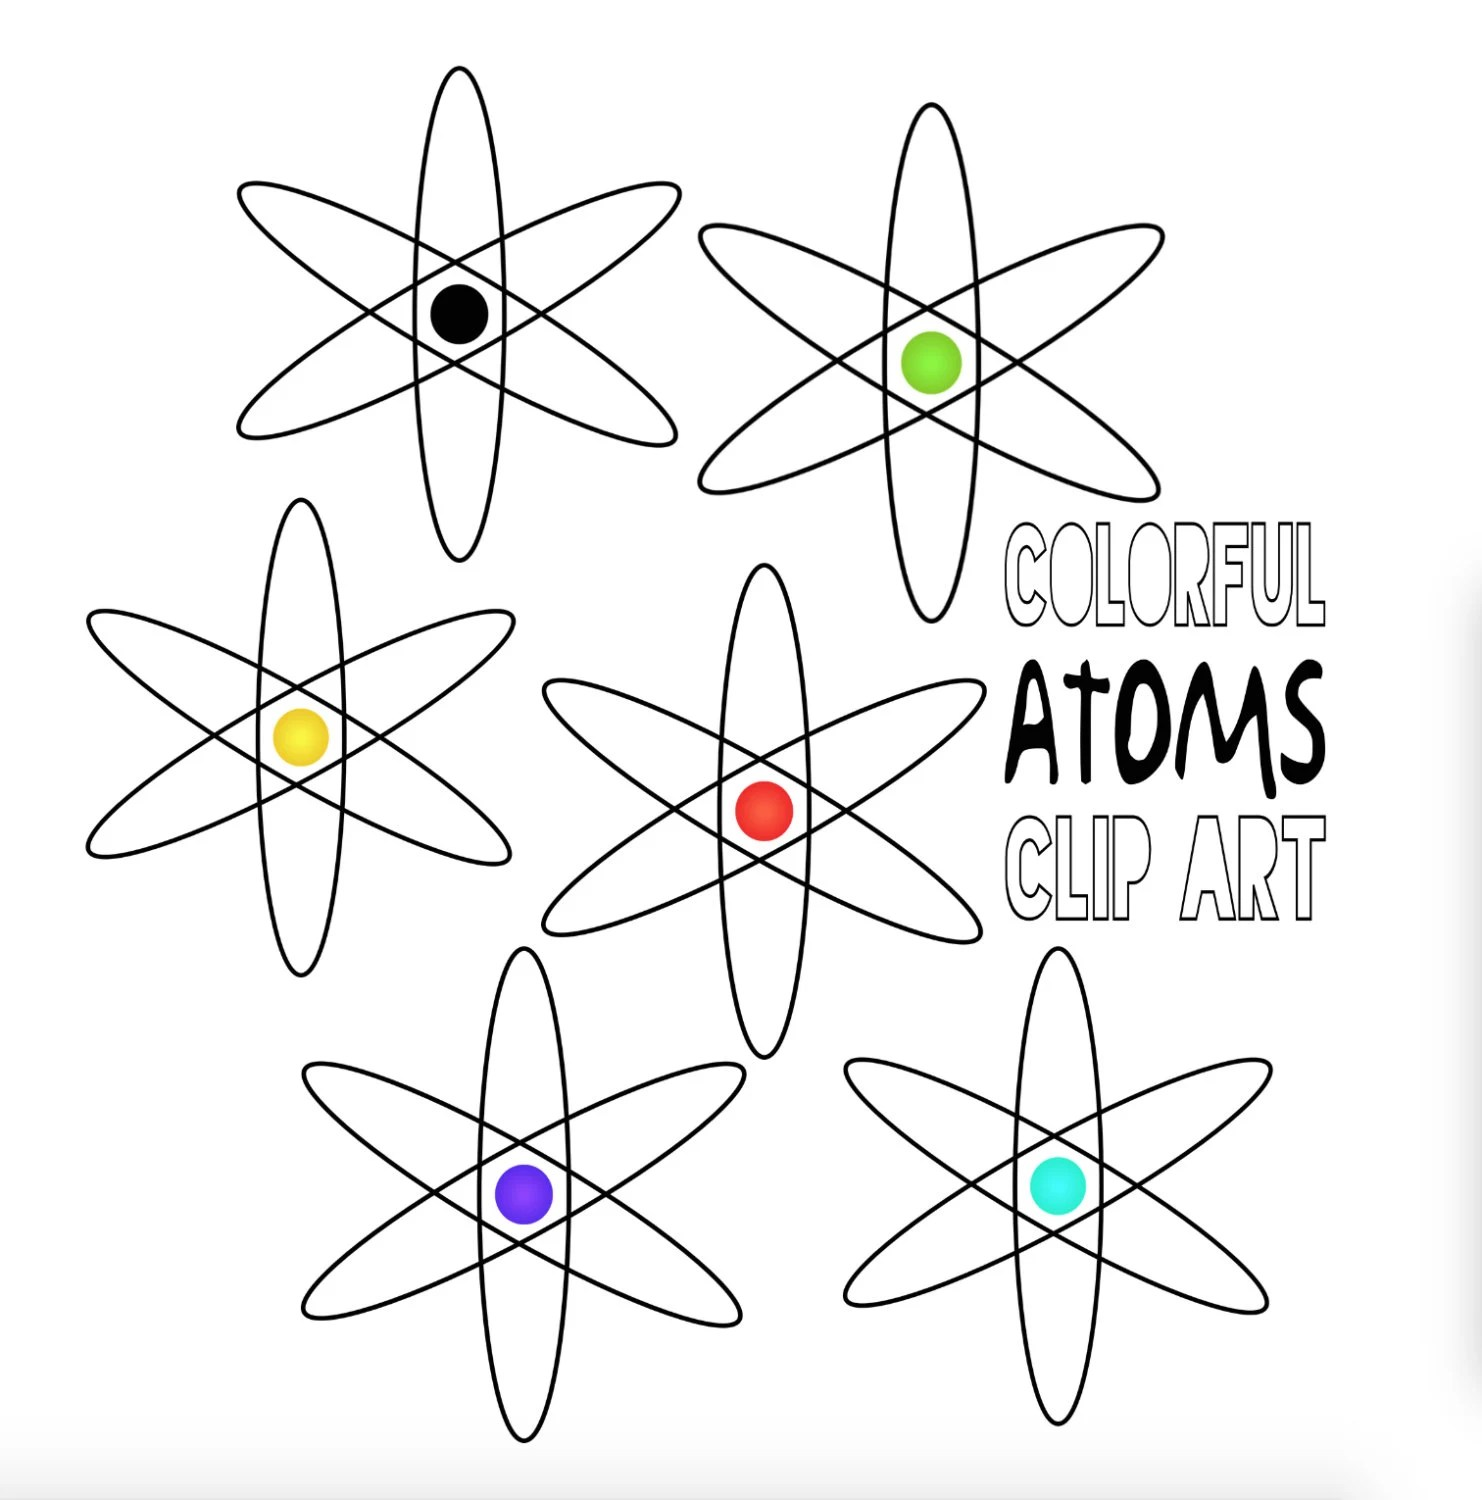 Atom Clip Art Atoms Clipart Atomic Image Science Graphic Icon